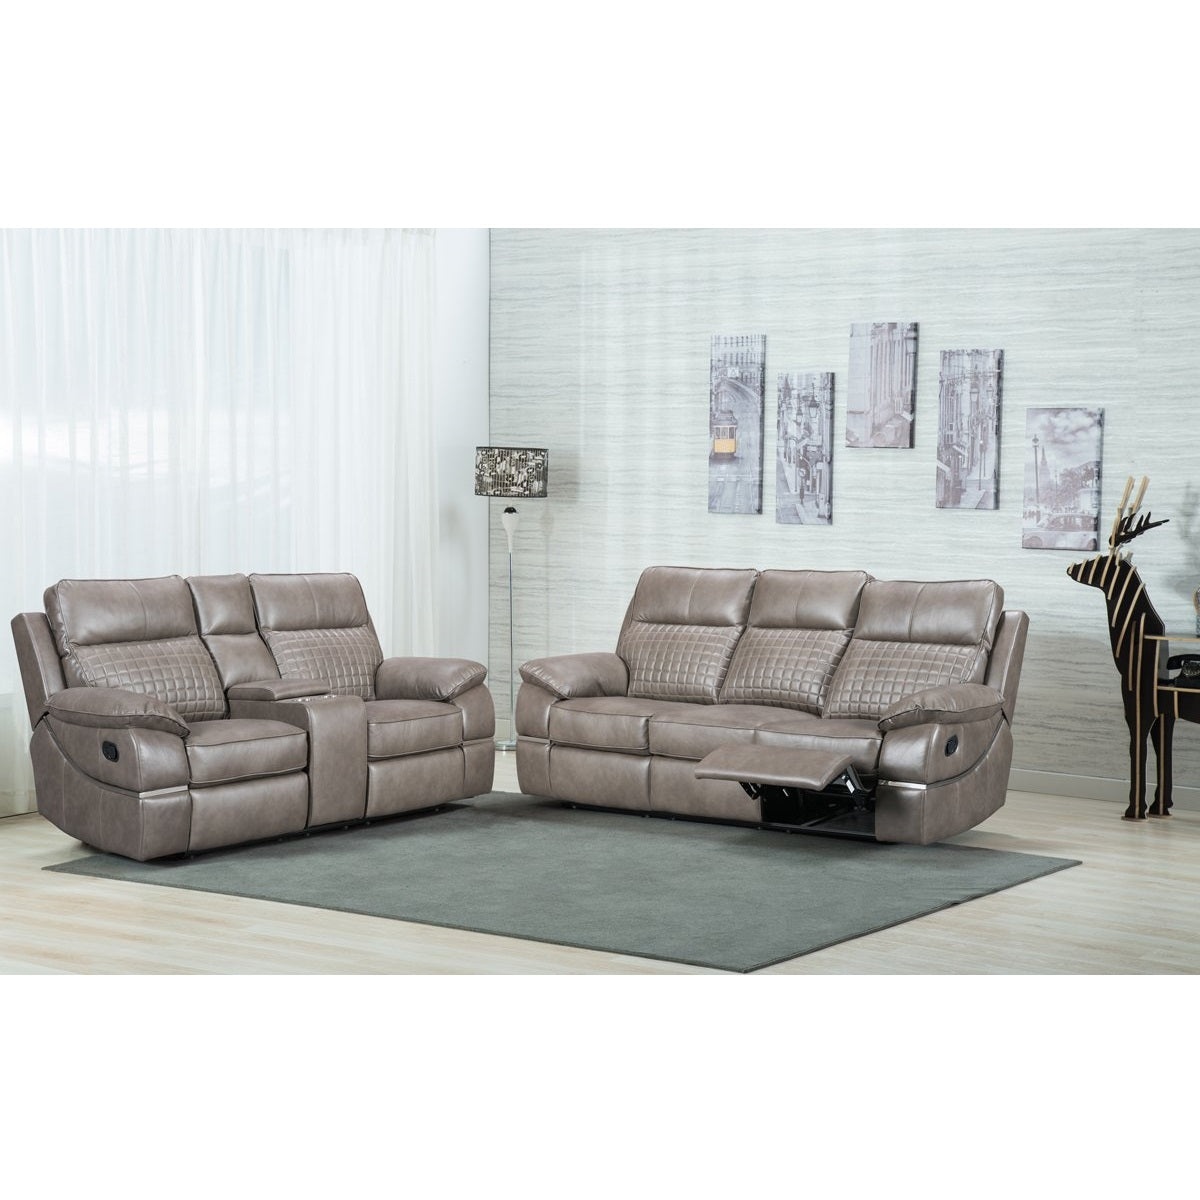 Sala Gris Reclinable Ceramic 2 Piezas